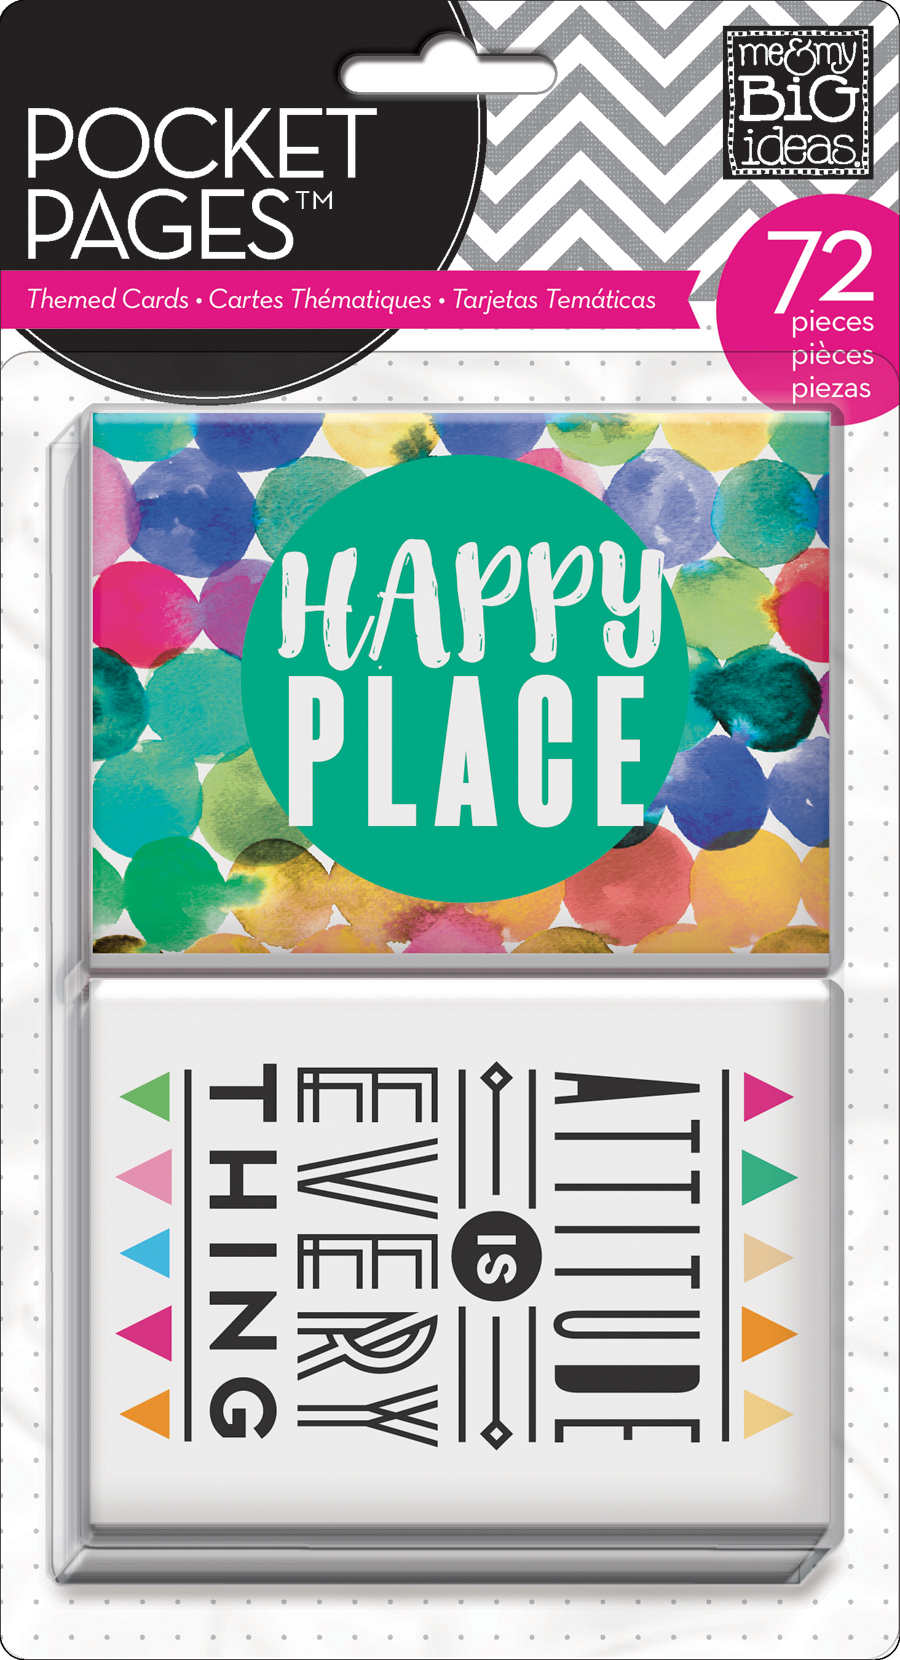 'Watercolor' POCKET PAGES™ cards   me & my BIg ideas.jpg